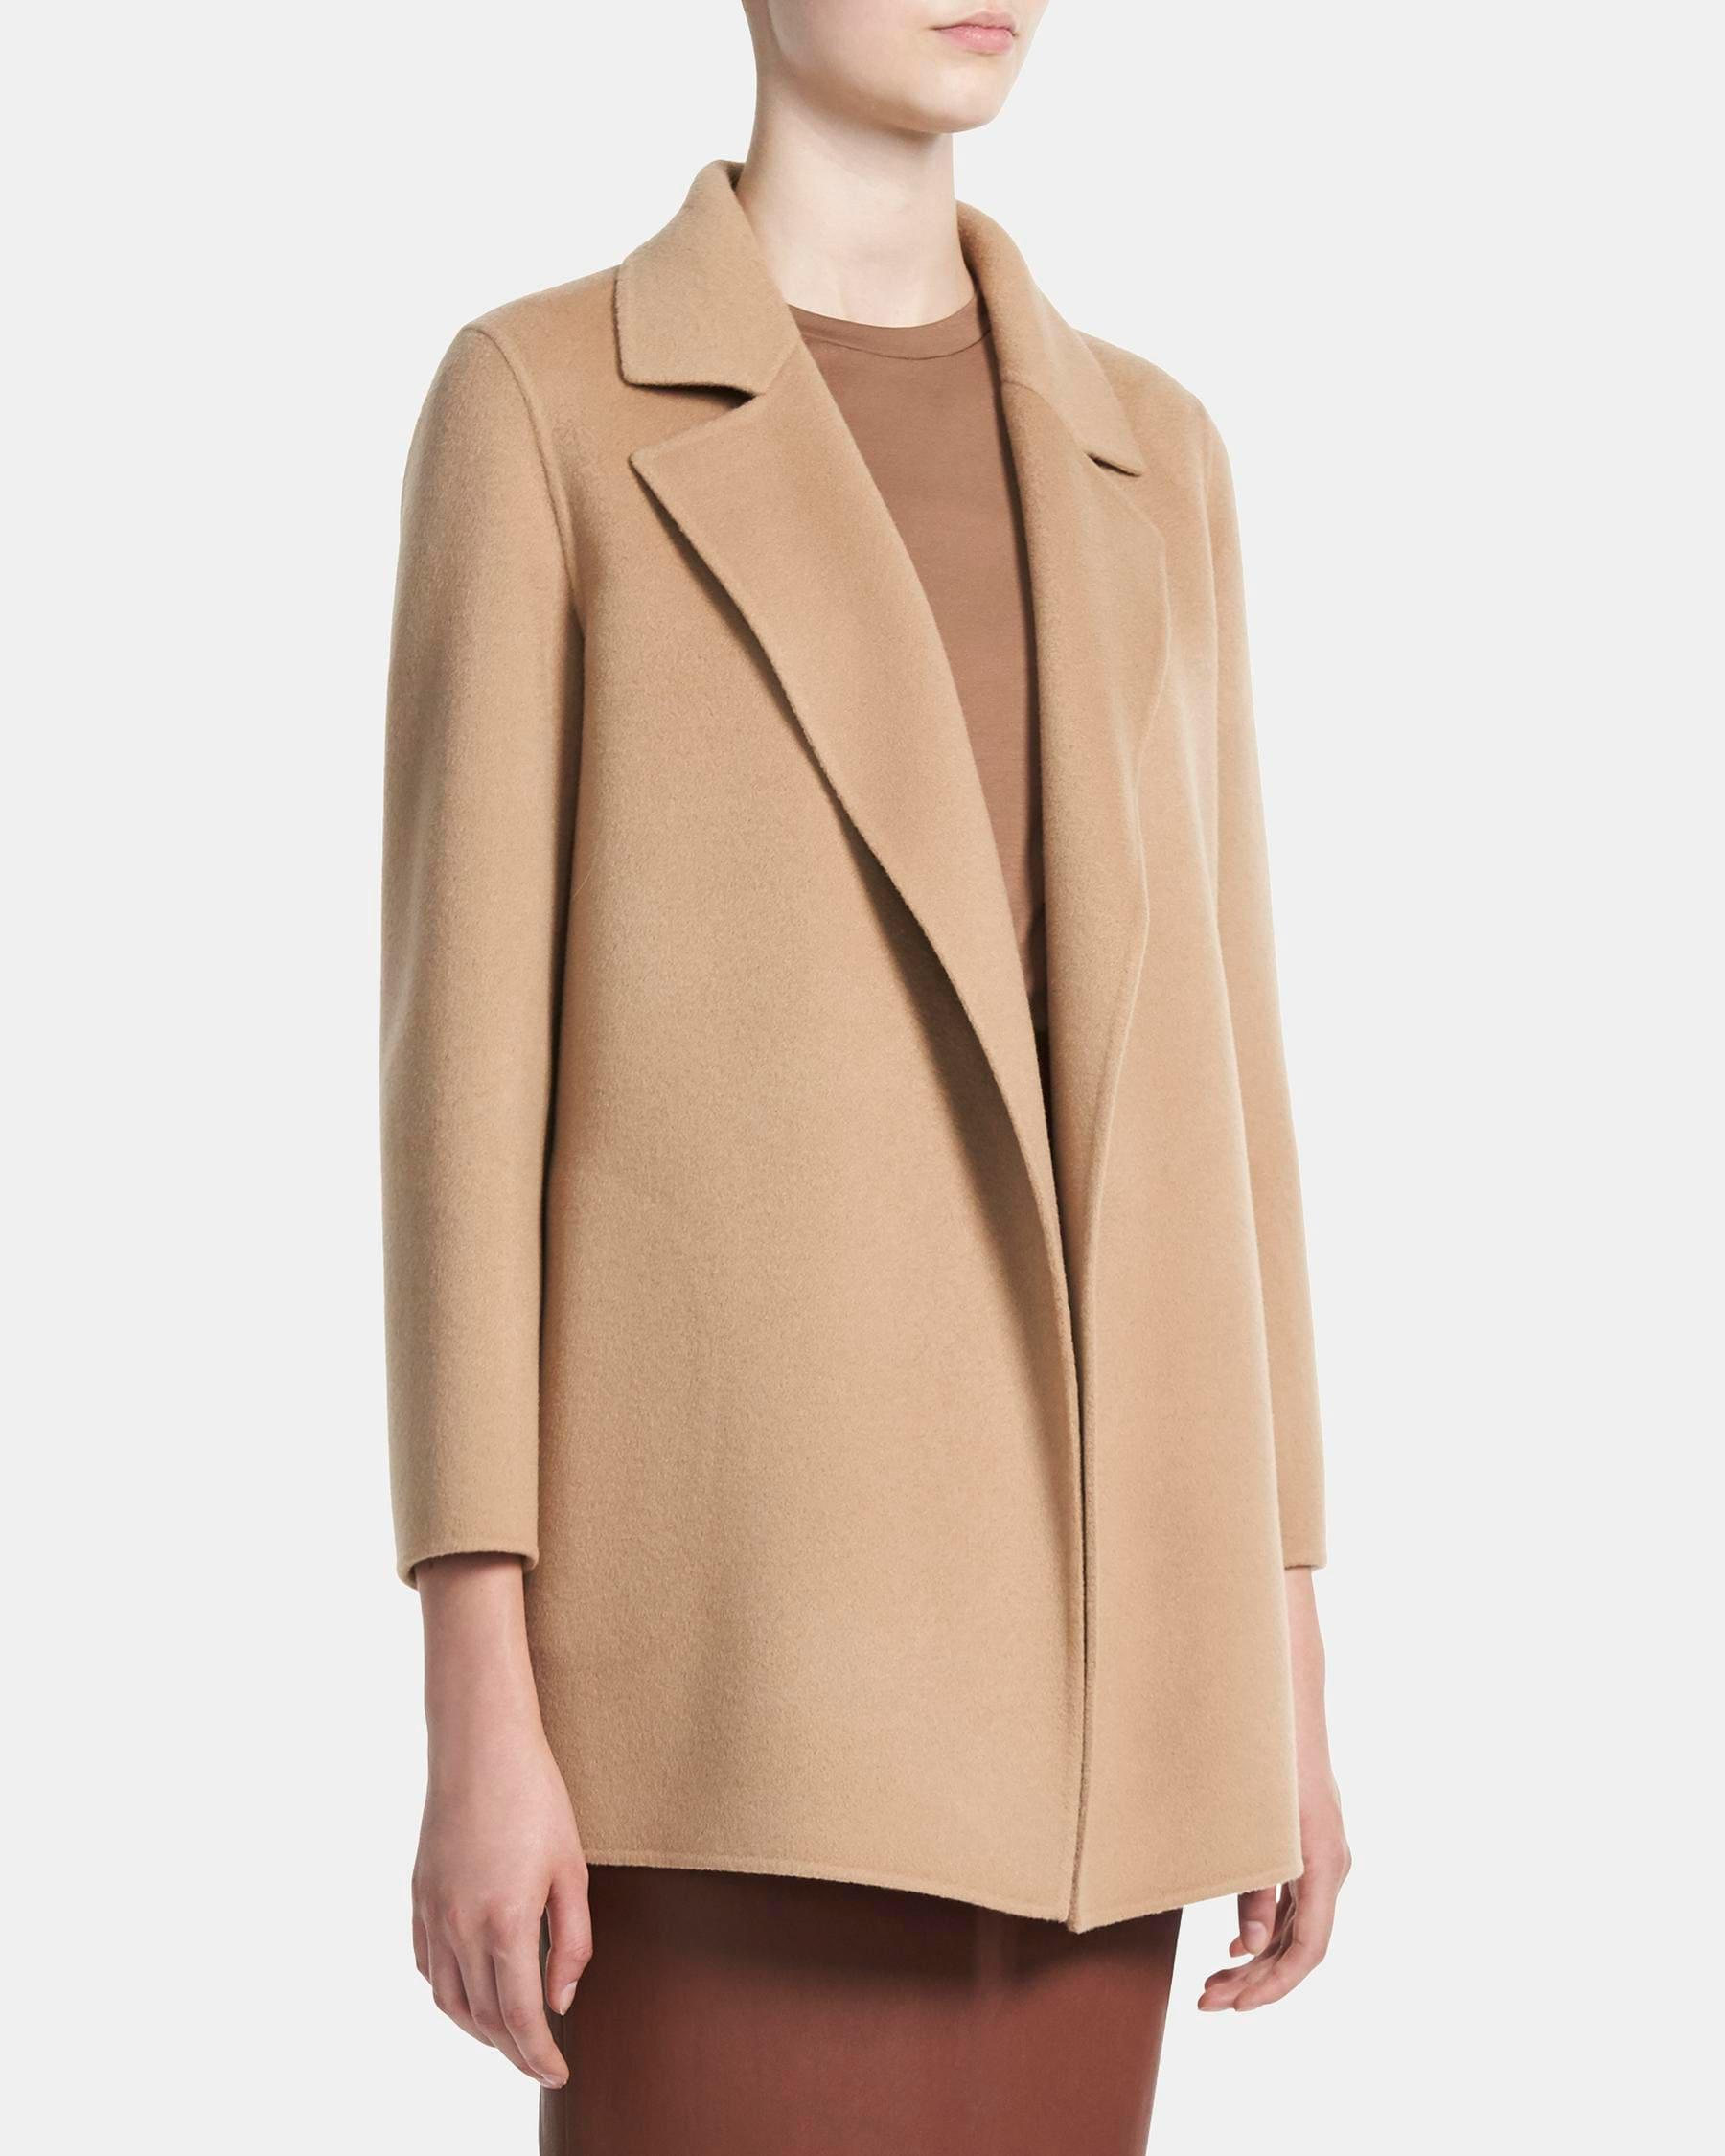 Clairene Jacket in Double-Face Wool-Cashmere 4